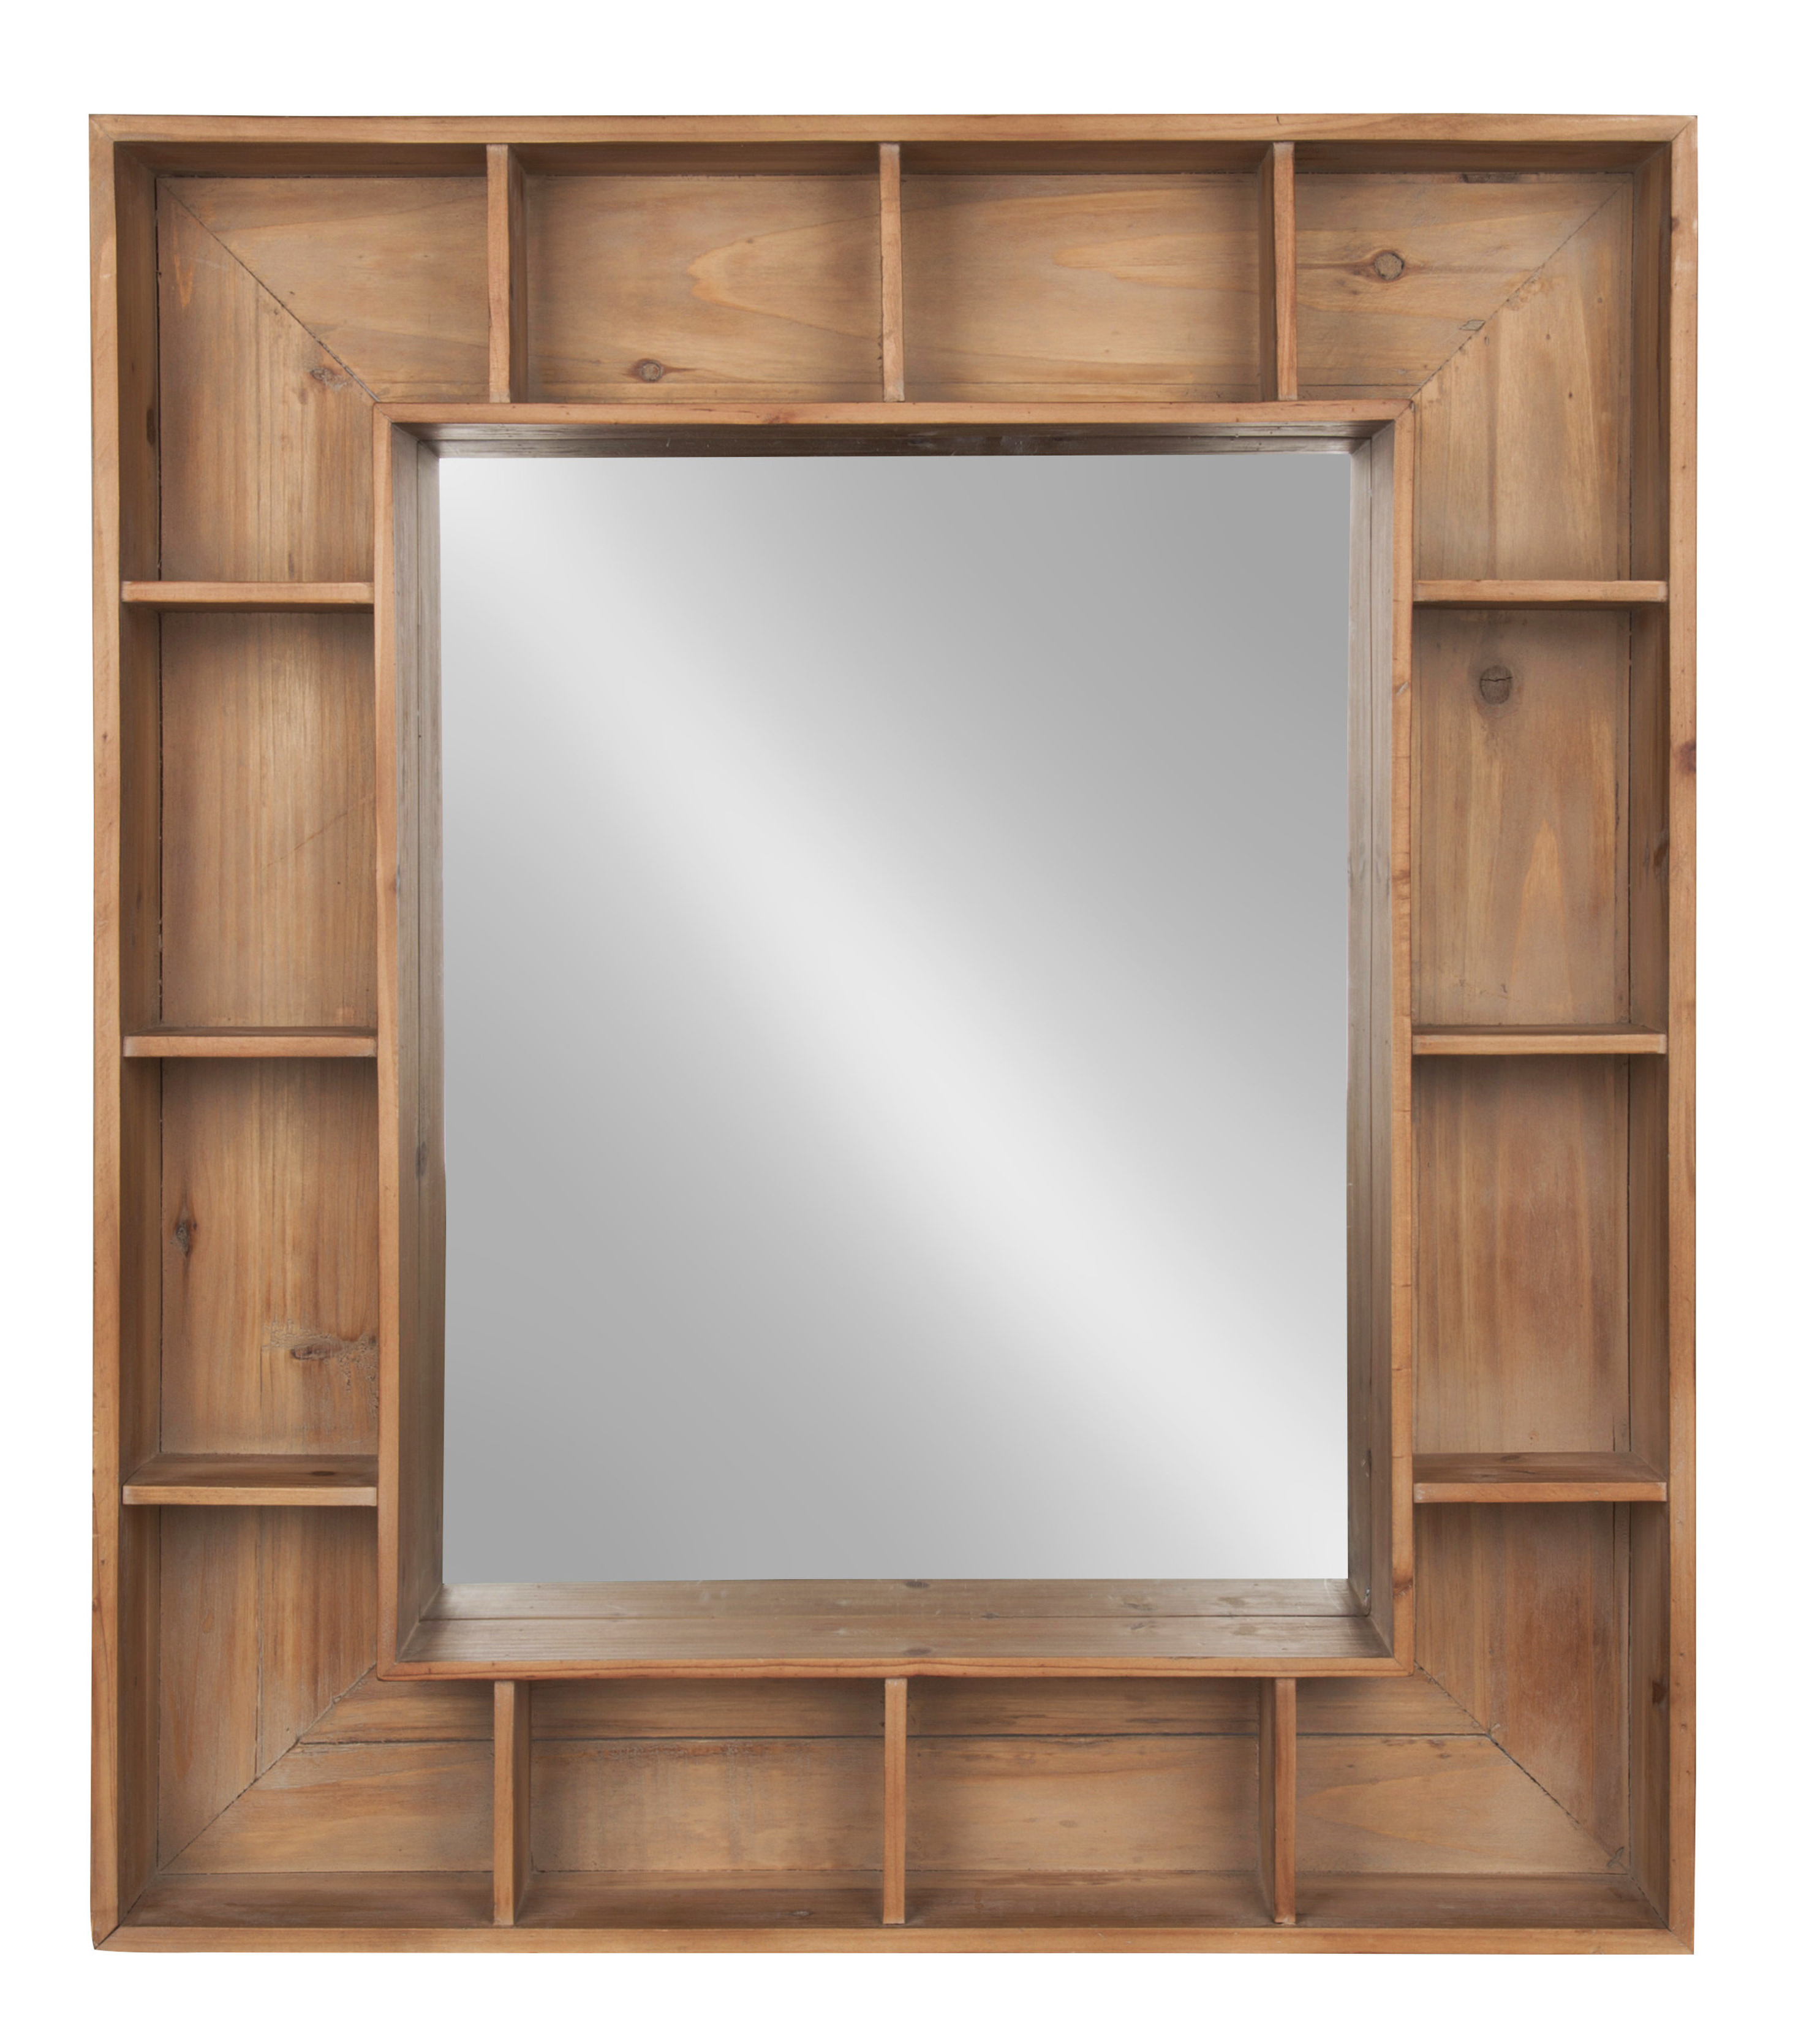 Well Known Gretel Rustic Wood Cubby Framed Wall Storage Accent Mirror Pertaining To Wall Mirrors With Storages (View 10 of 20)